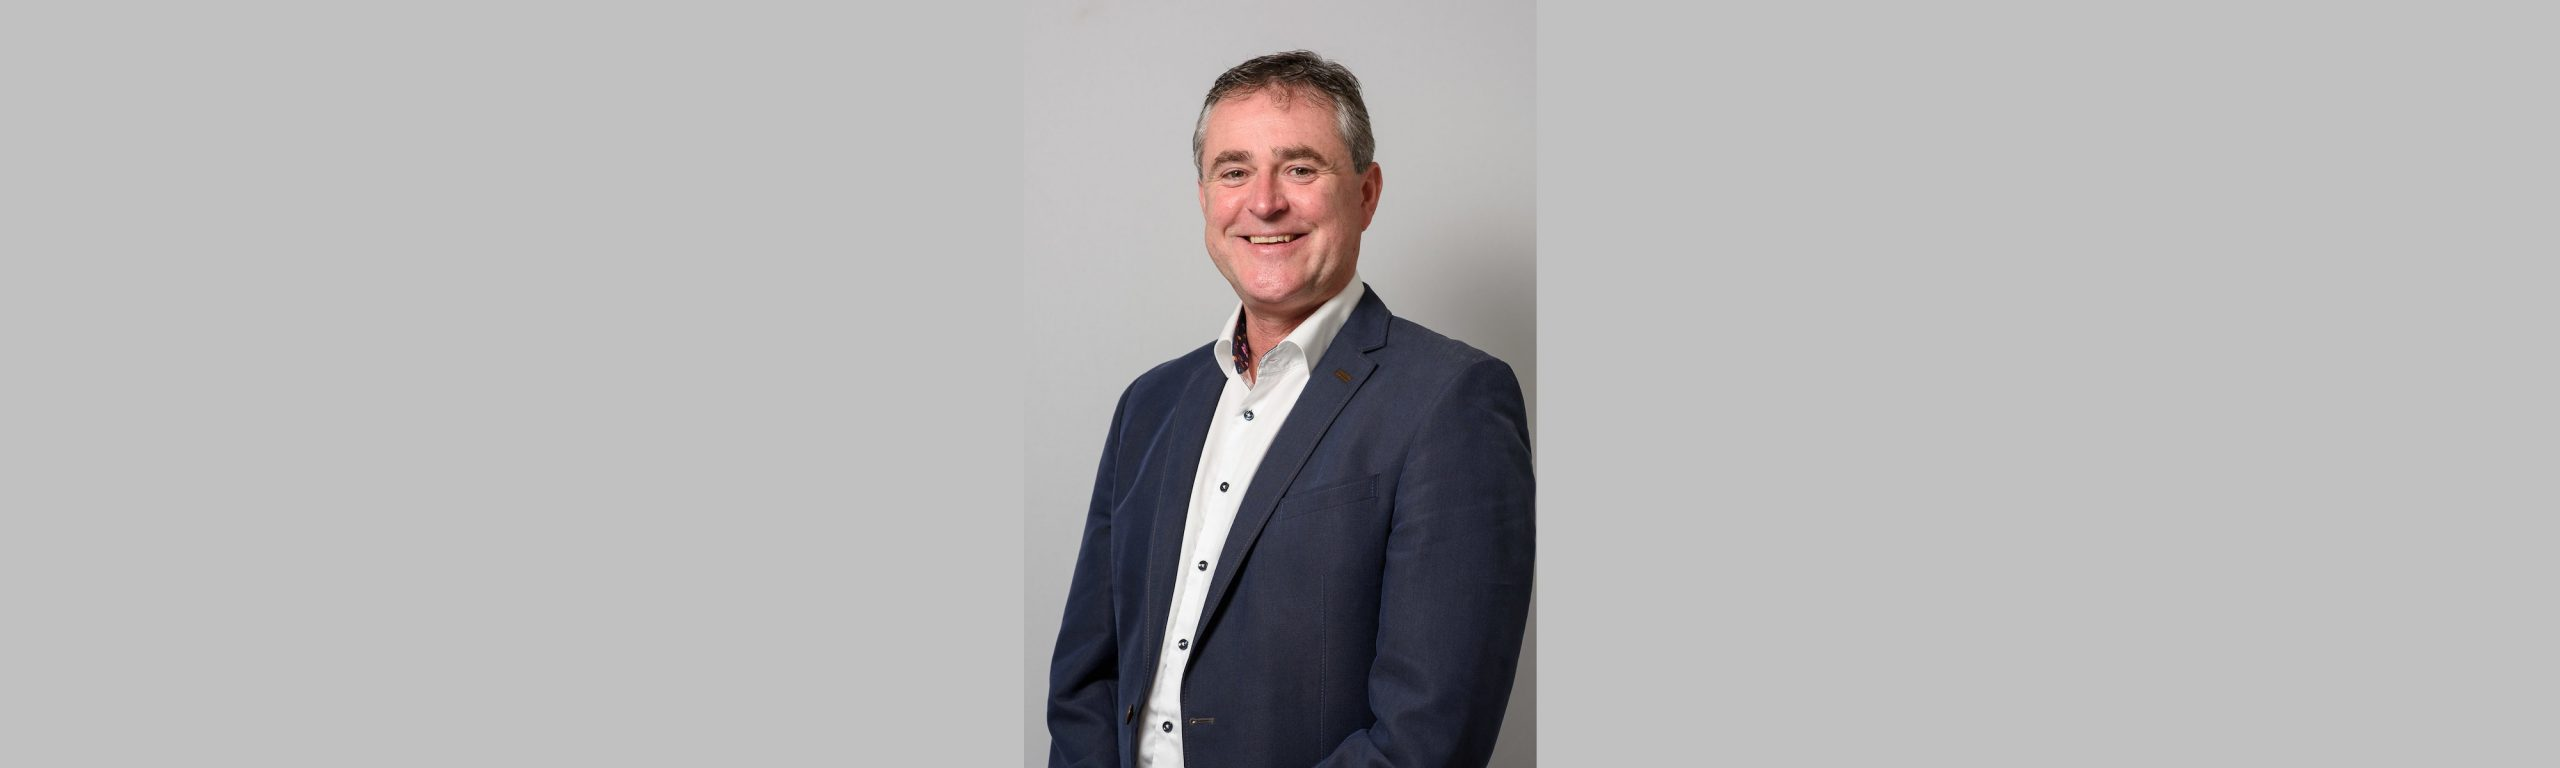 Harmonics Appoints Executive Search and Market Intelligence Specialist